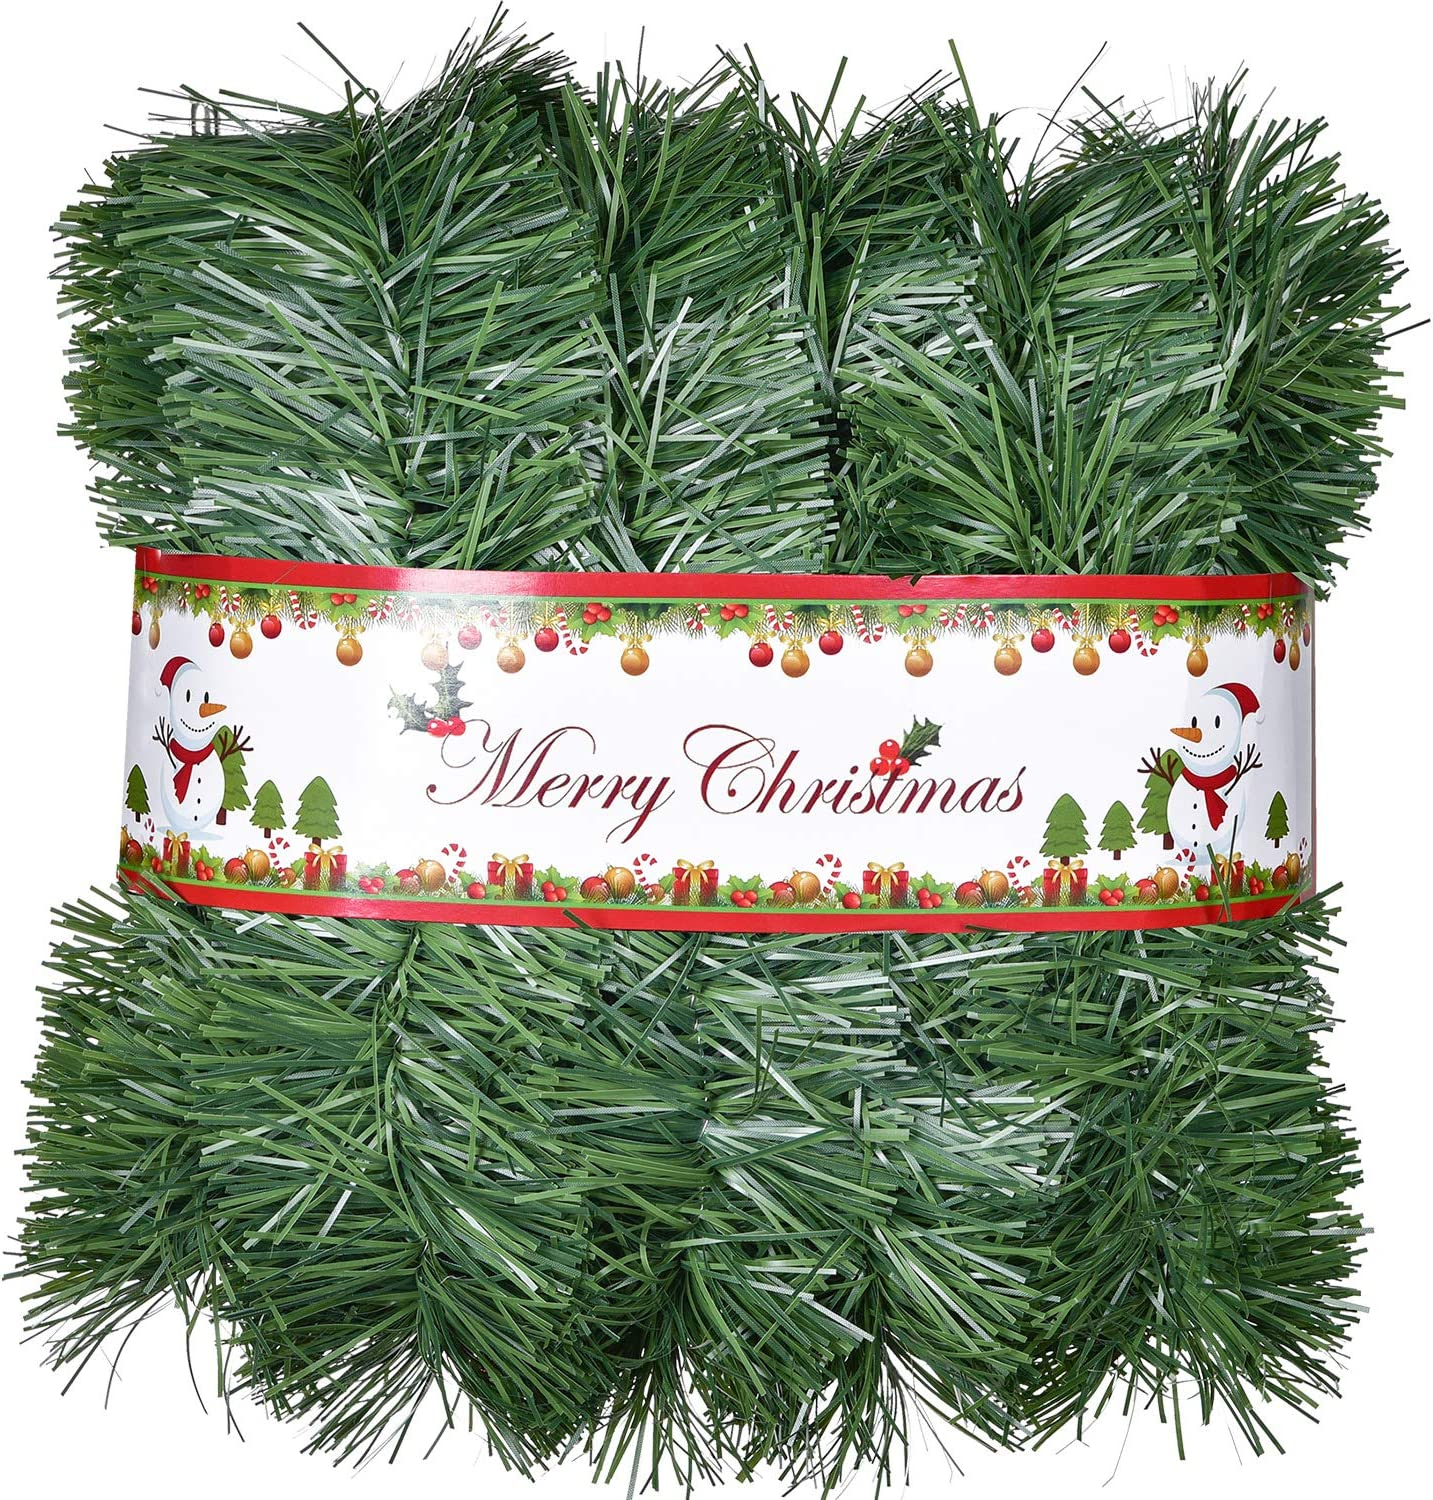 DearHouse 33 Foot Christmas Garland, Artificial Pine Garland Holiday Decor for Outdoor or Indoor Home Garden Artificial Green Greenery, or Fireplaces Holiday Party Decorations